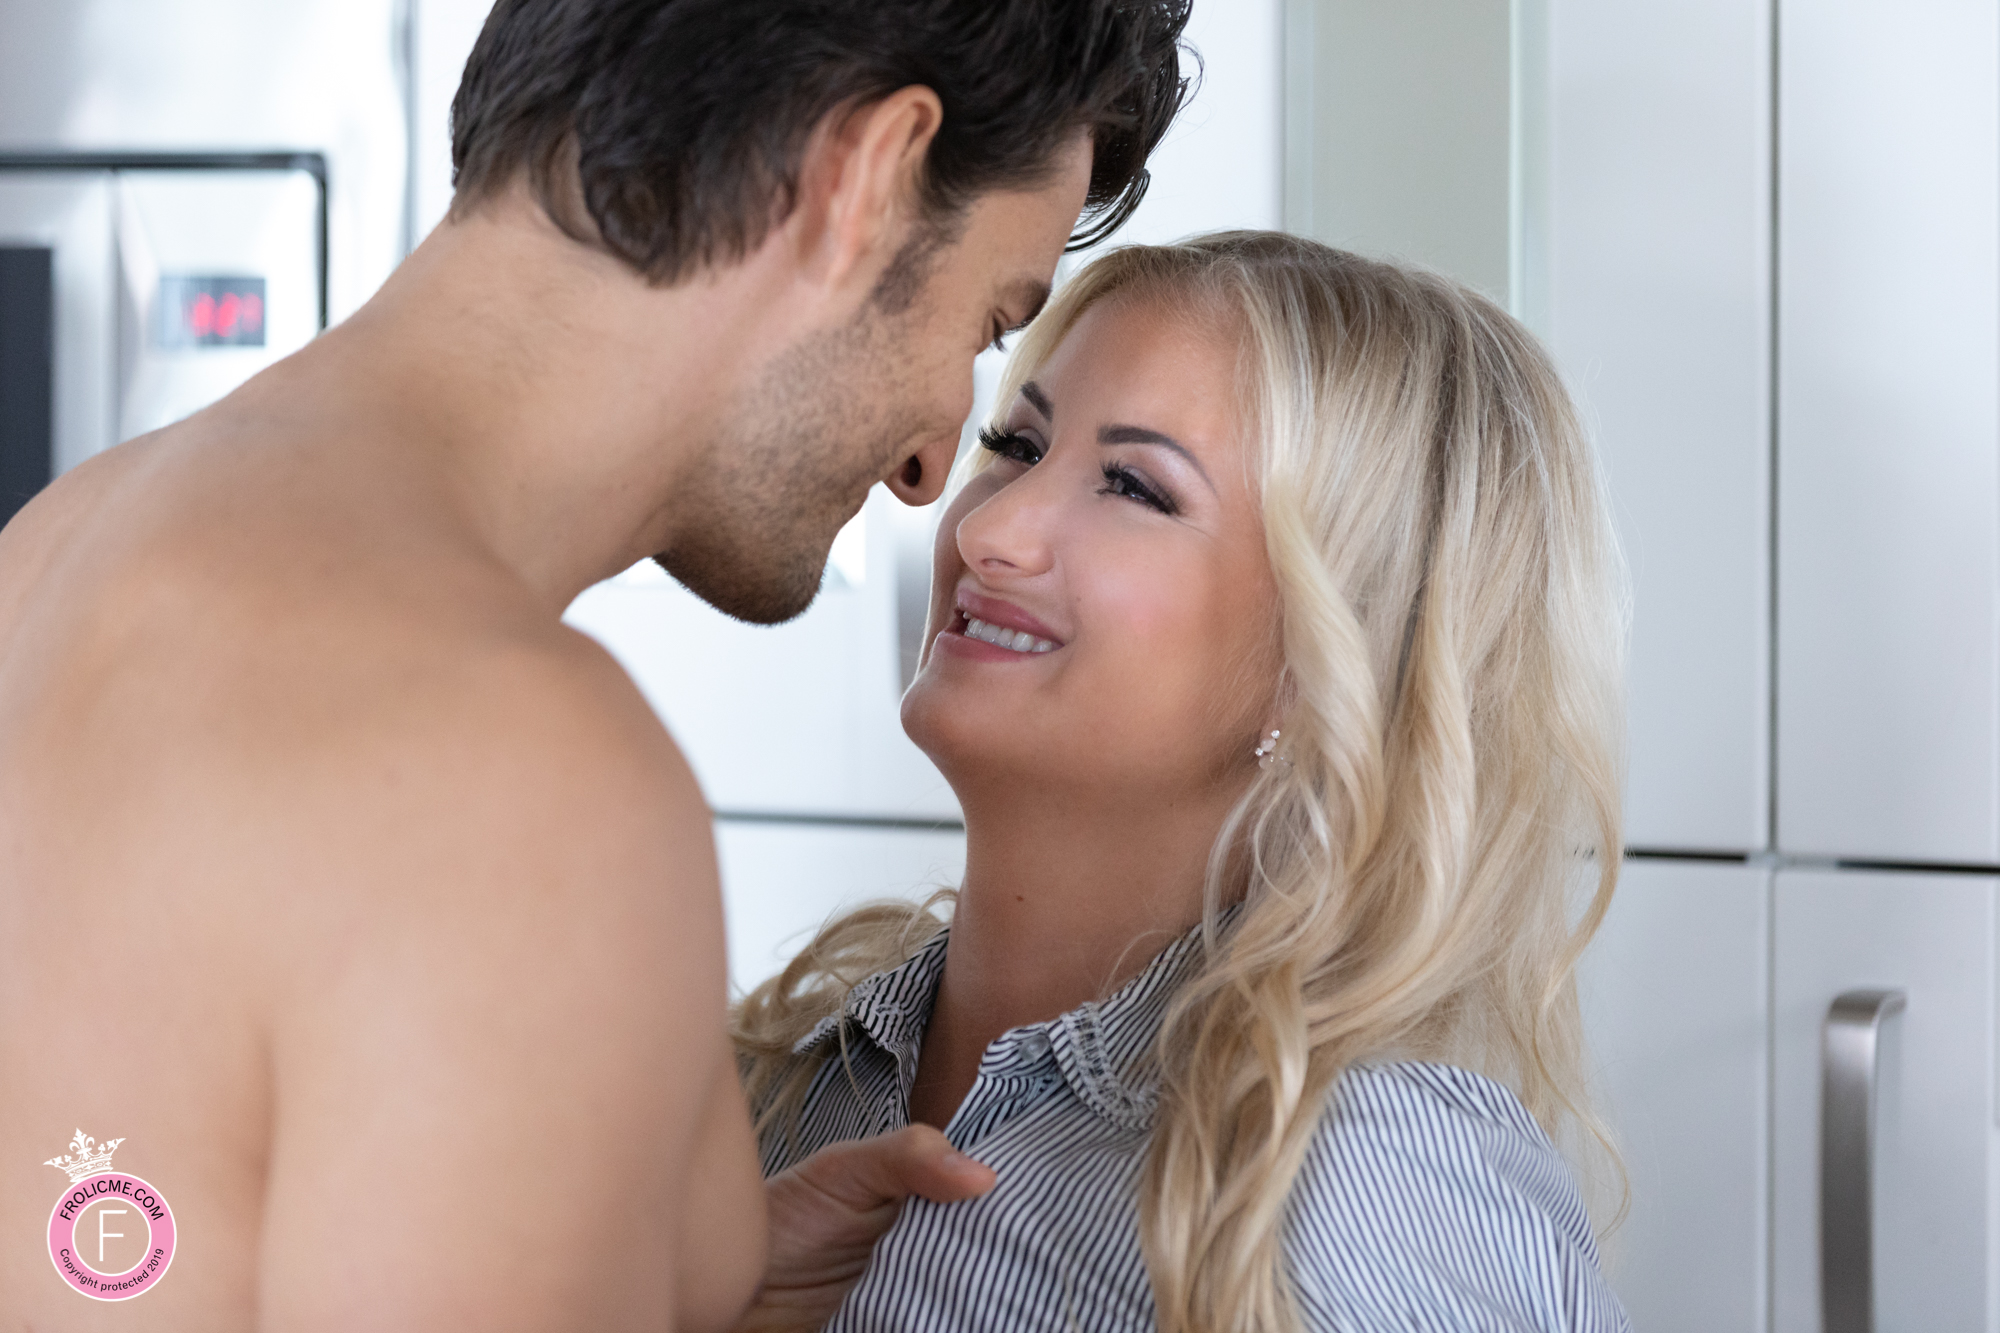 Frolicme: Passionate Desire - Erotic Sex Pics Of Some Spontaneous Fucking 6